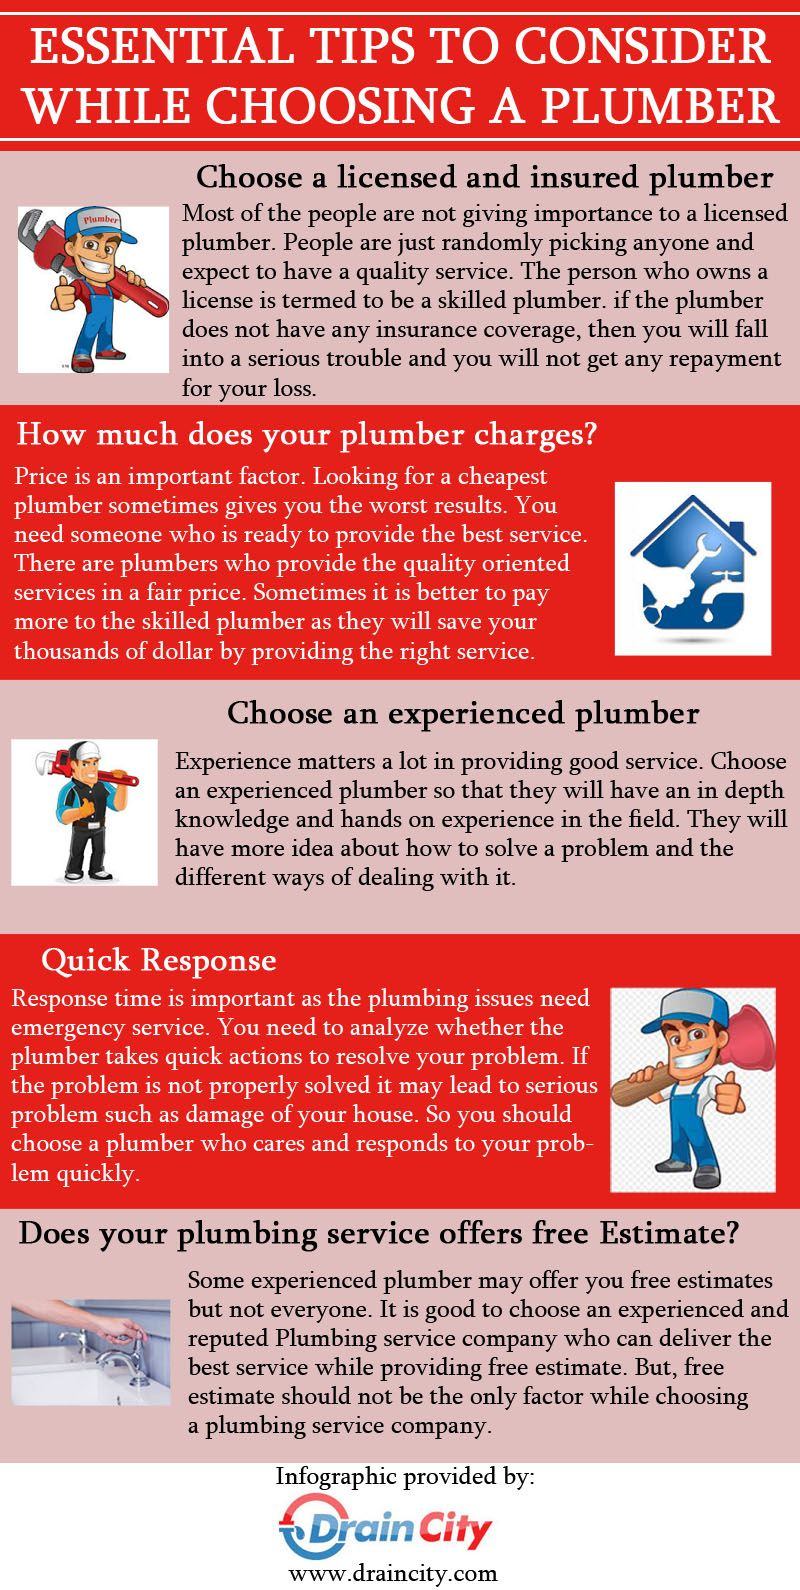 Tips for 24-hour plumbing emergencies   from licensed plumbers